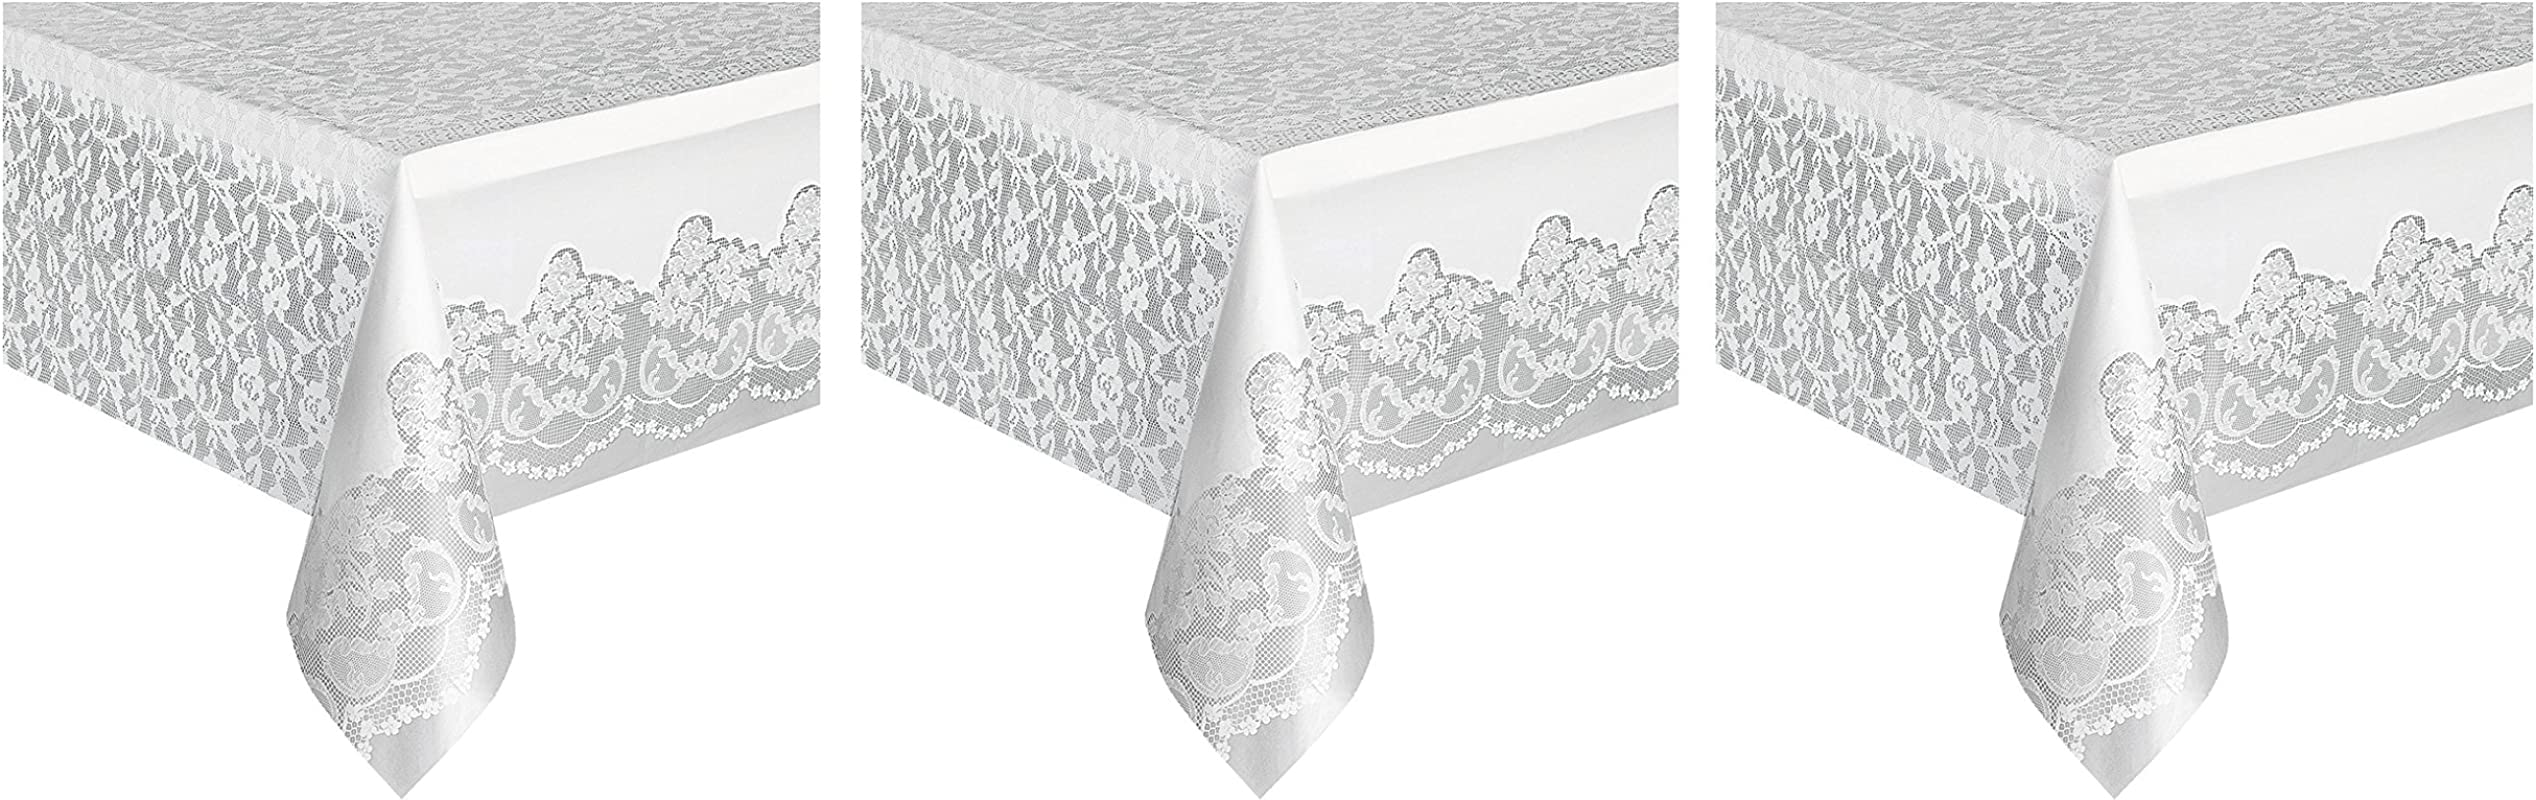 White Lace Plastic Tablecloth 108 X 54 3 Pack